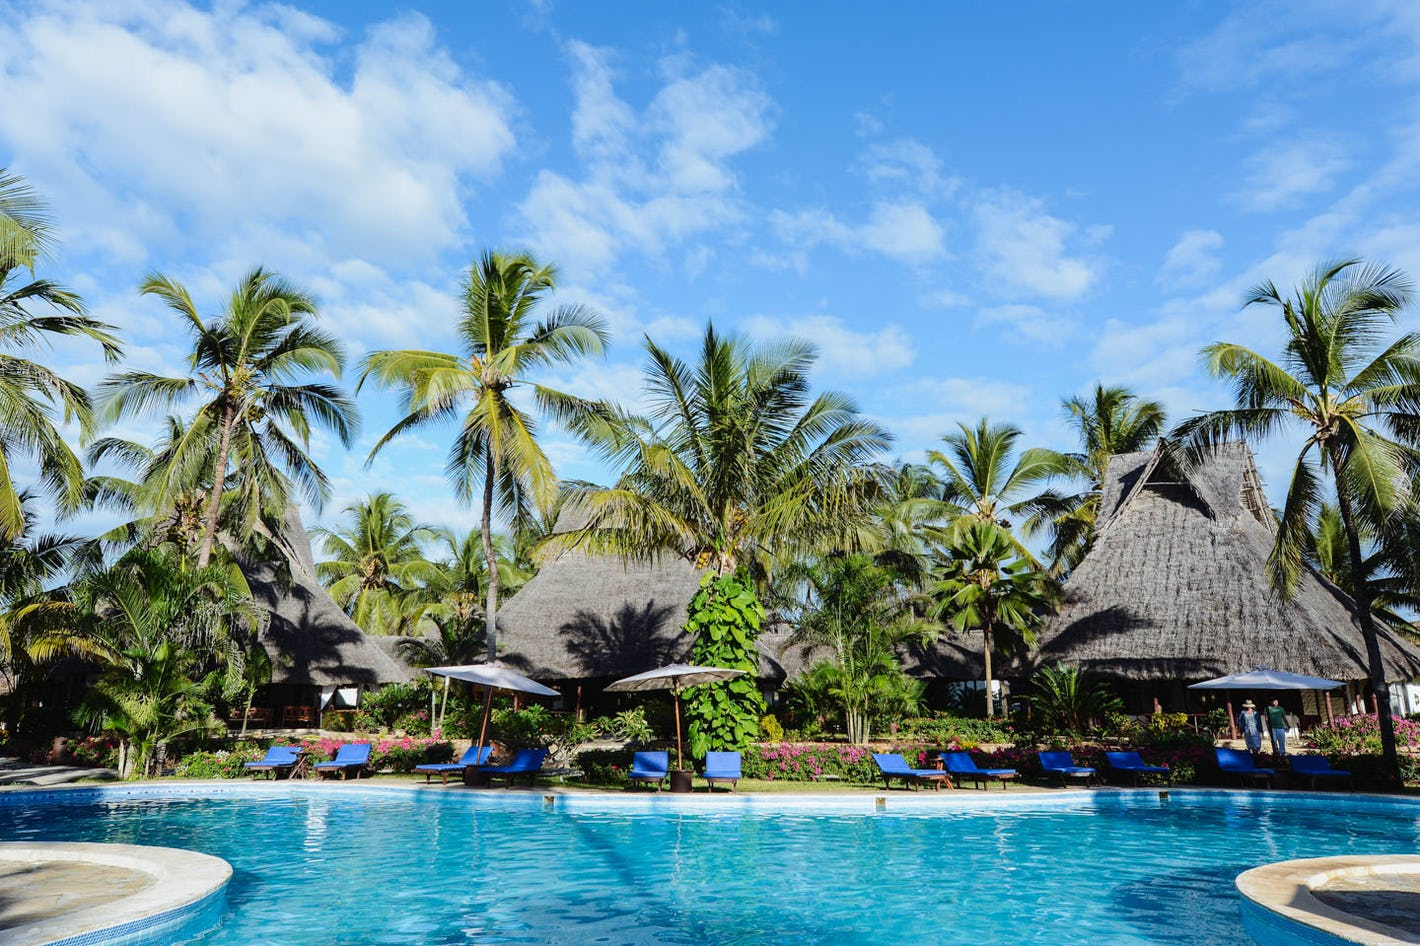 With 74 Guest Rooms Breezes Beach Club And Spa Is A Larger Resort